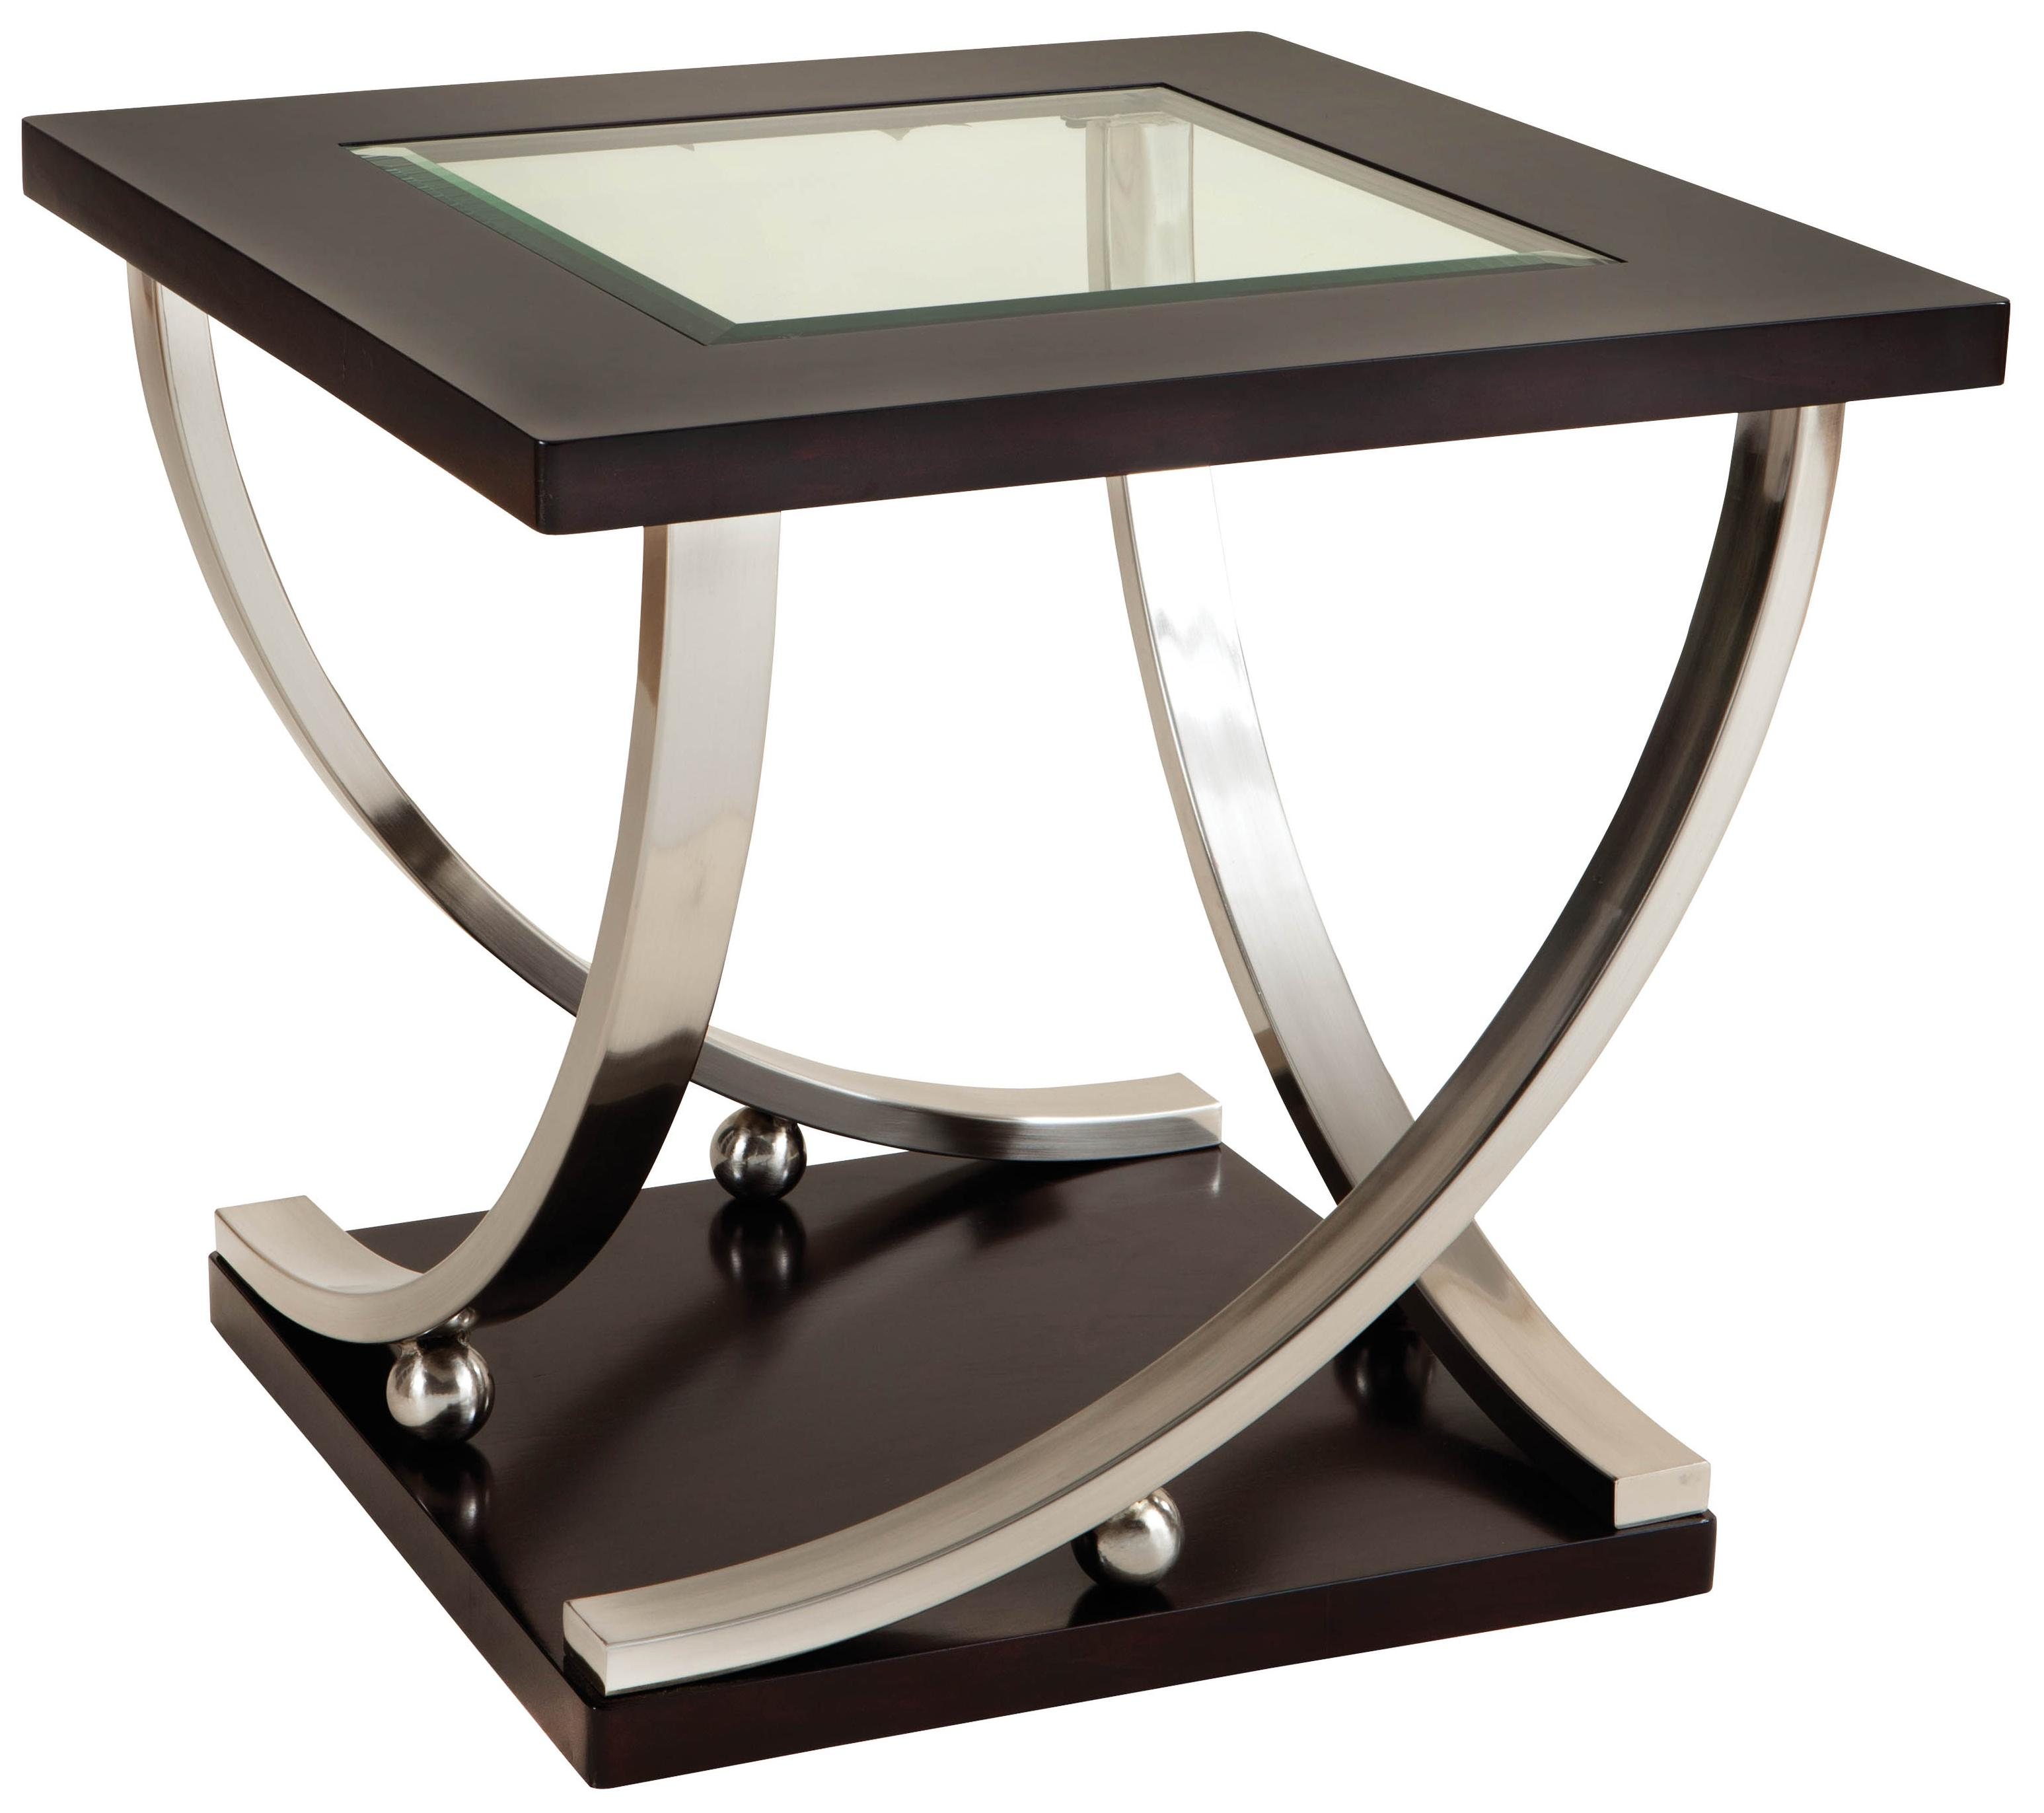 Standard Furniture Melrose End Table with Glass Top - Item Number 25922  sc 1 st  Wayside Furniture & Standard Furniture Melrose Square End Table with Glass Table Top ...